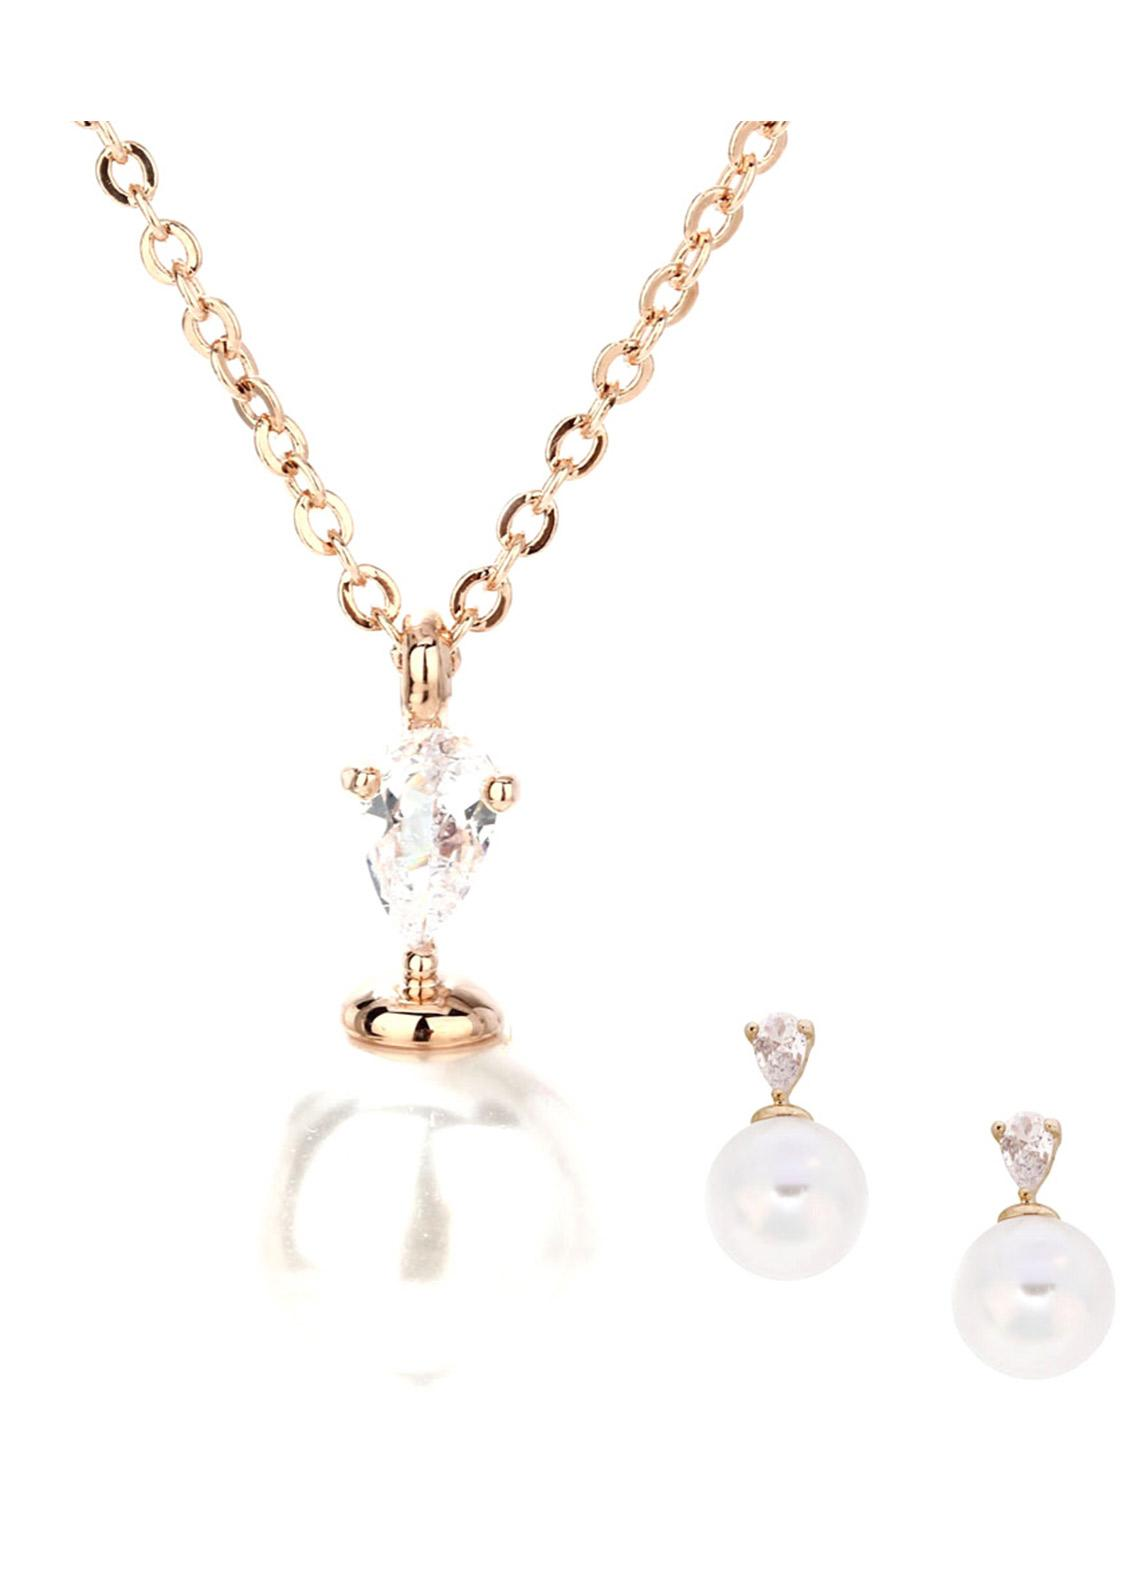 Anna Grace London by Silk Avenue Gold Plated Crystal Pearl Necklace & Earrings Jewelry Set AGNE010  - Ladies Jewellery